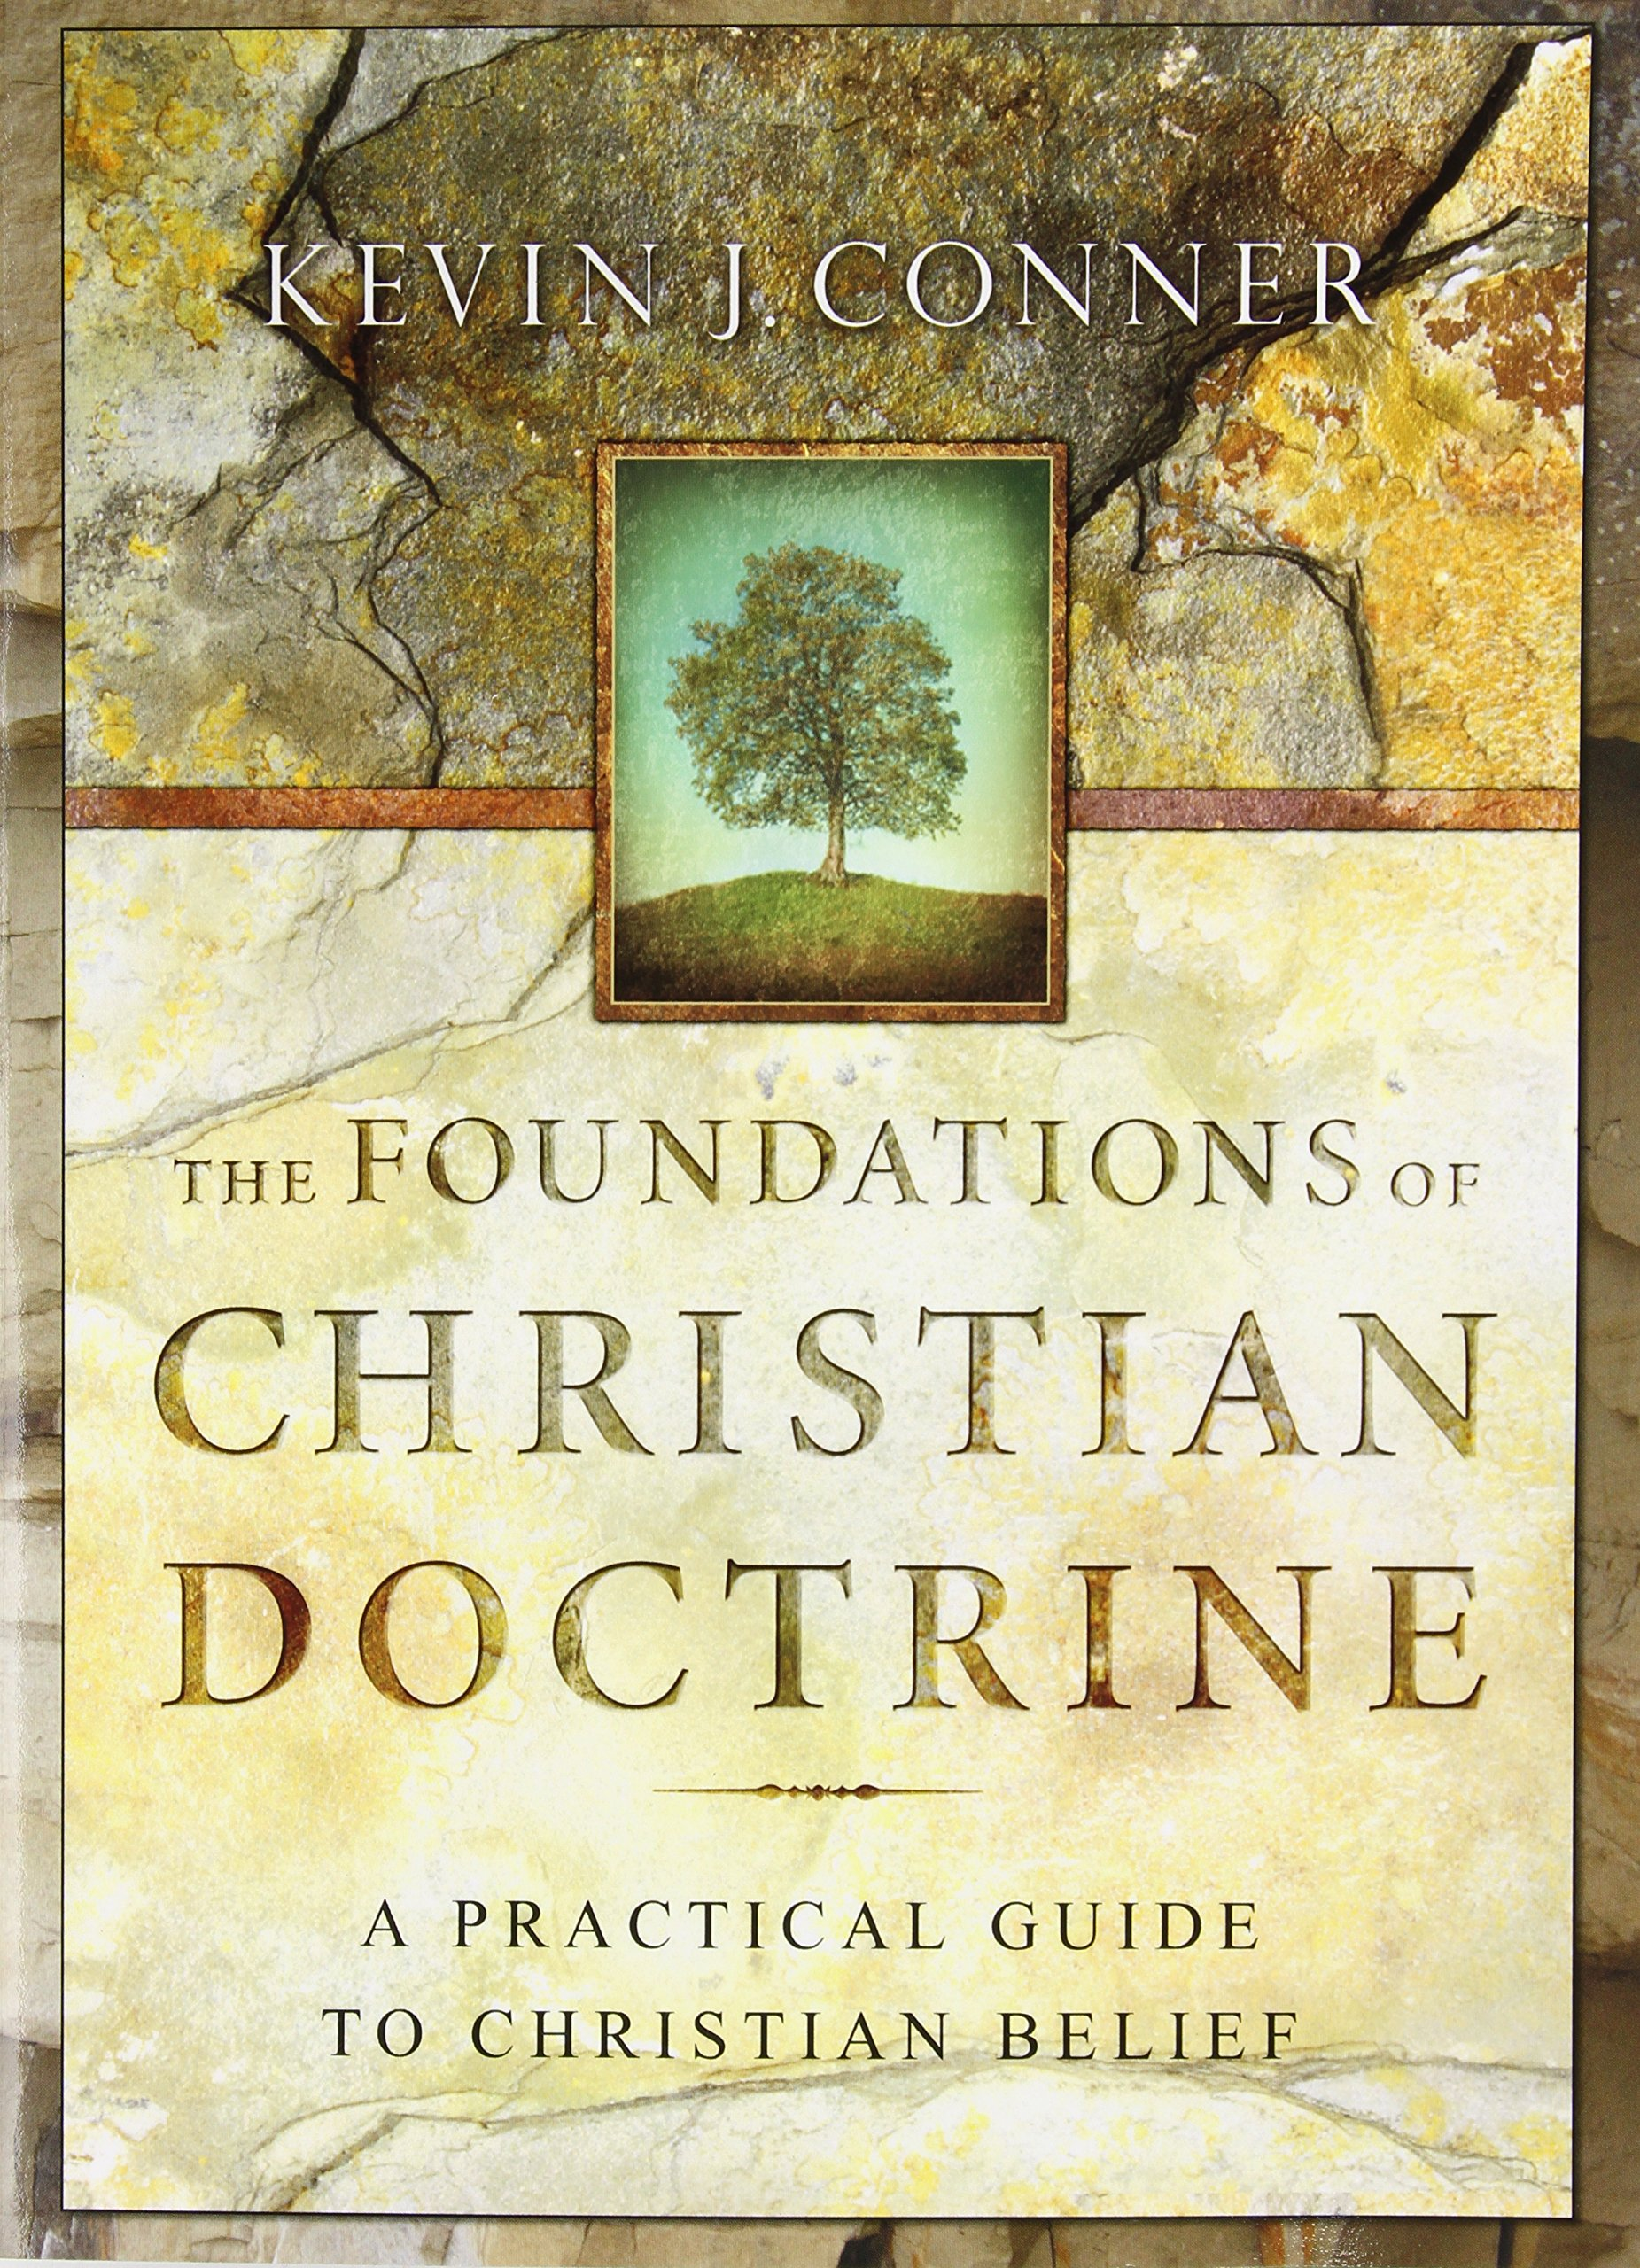 the foundations of christian doctrine kevin j conner